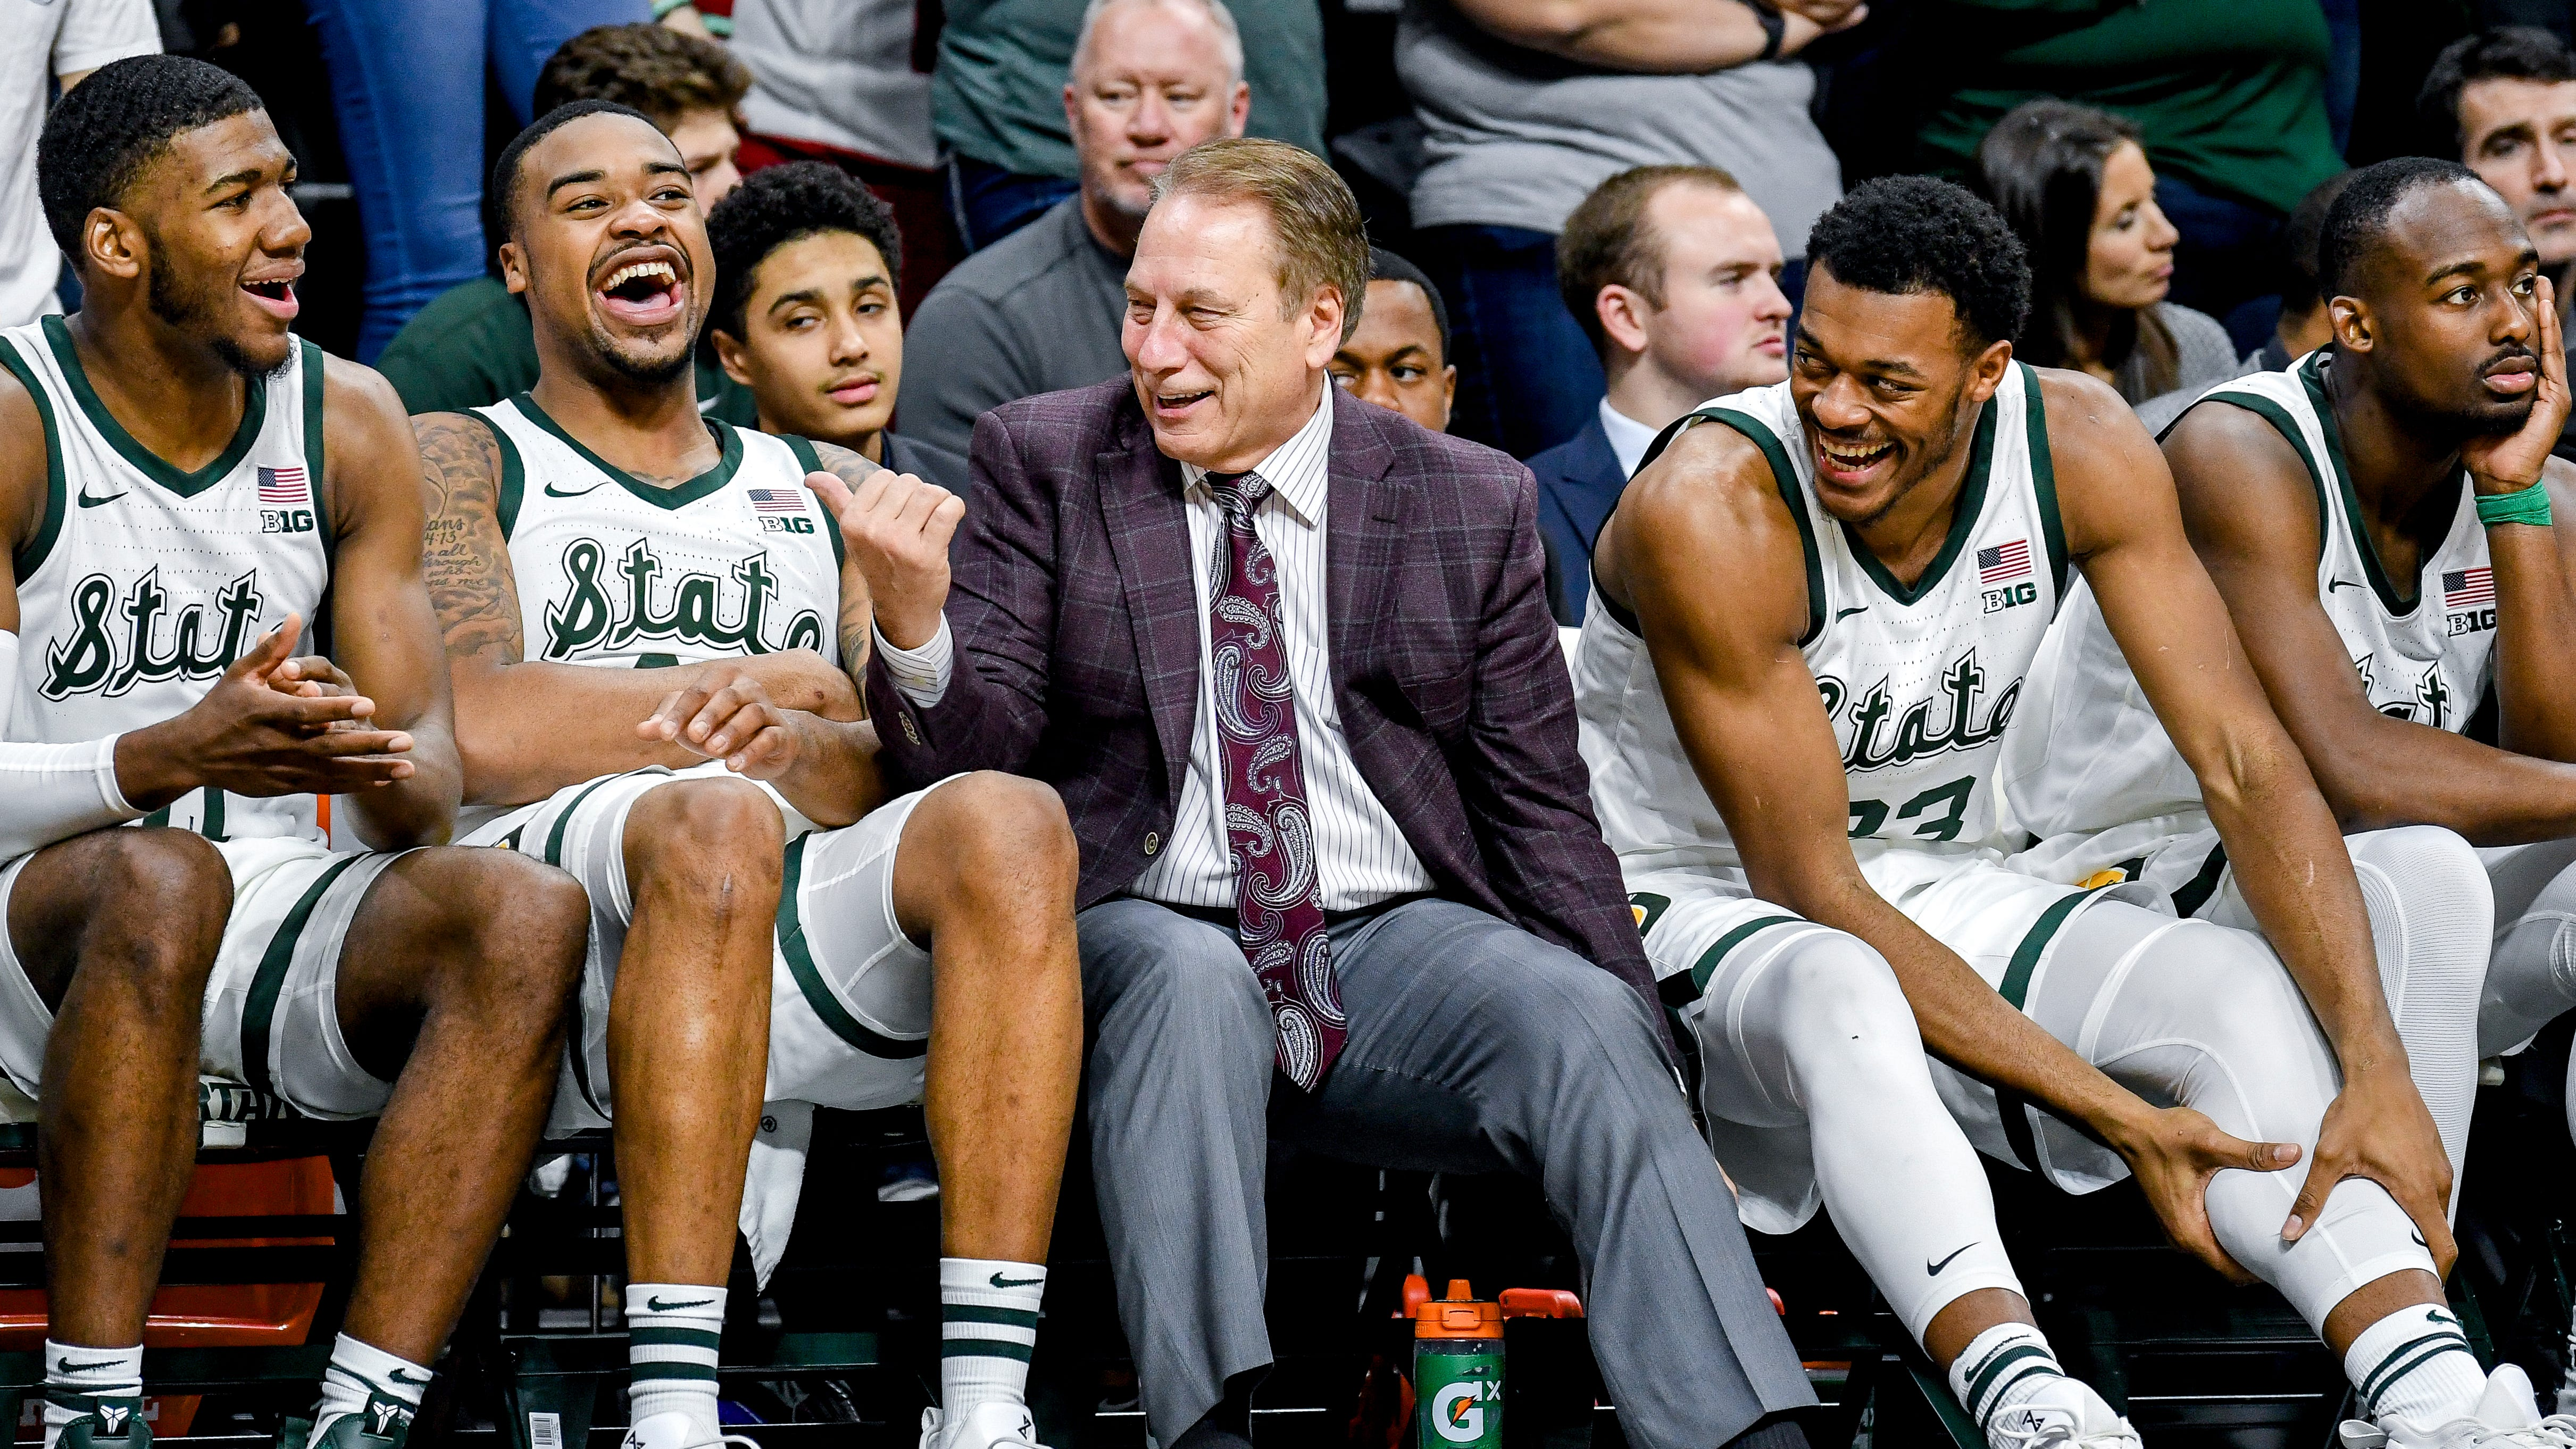 Msu Basketball Football Made Up Mailbag Tom Izzo S All Time Roster